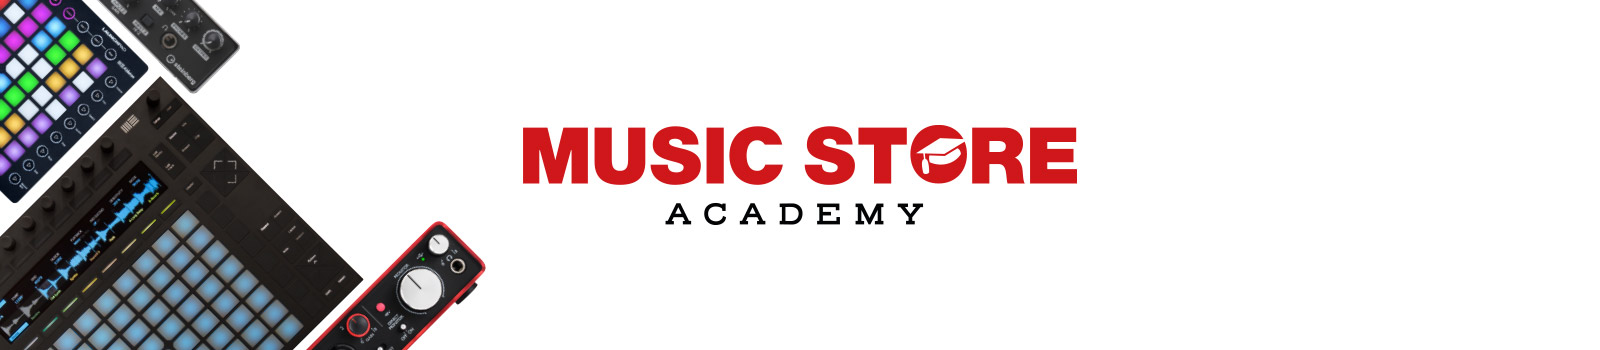 MusicStore-MusicStoreShop:/static-pages/MS-Academy/MS-Academy.jpg